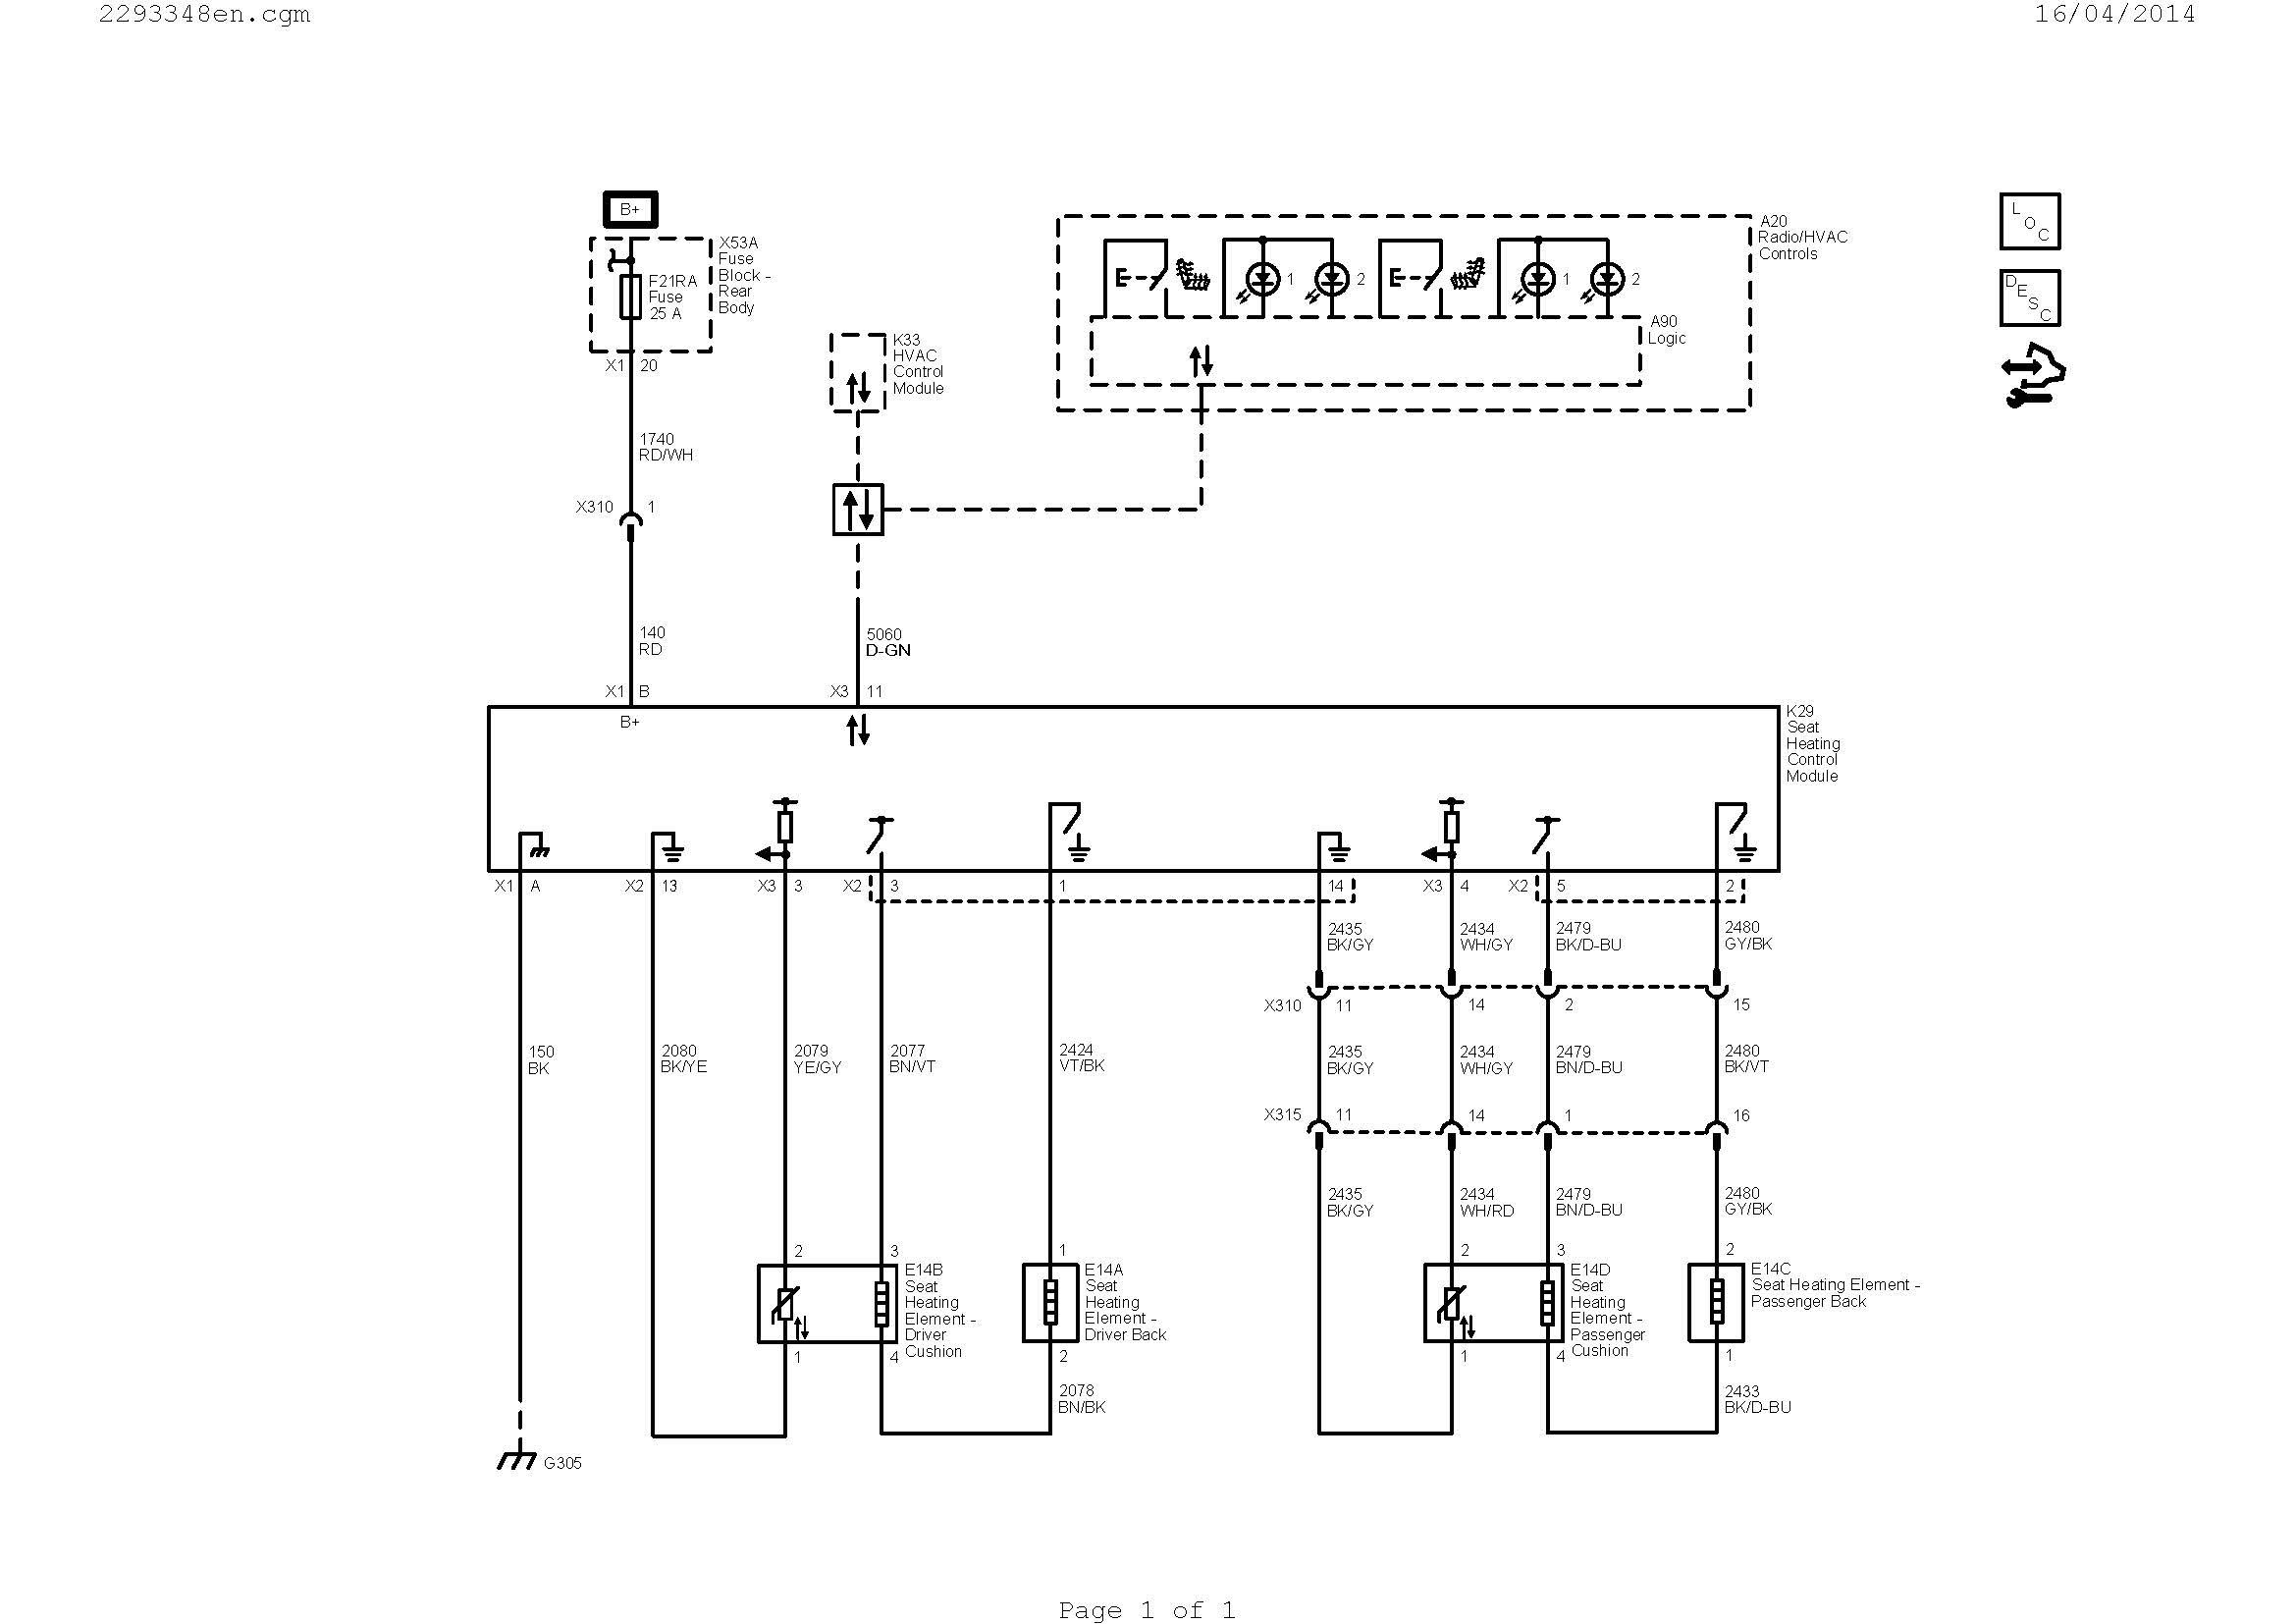 electric baseboard wiring diagram Collection-electric heater wiring diagram Collection Wiring Diagrams For Central Heating Refrence Hvac Diagram Best Hvac DOWNLOAD Wiring Diagram 14-o